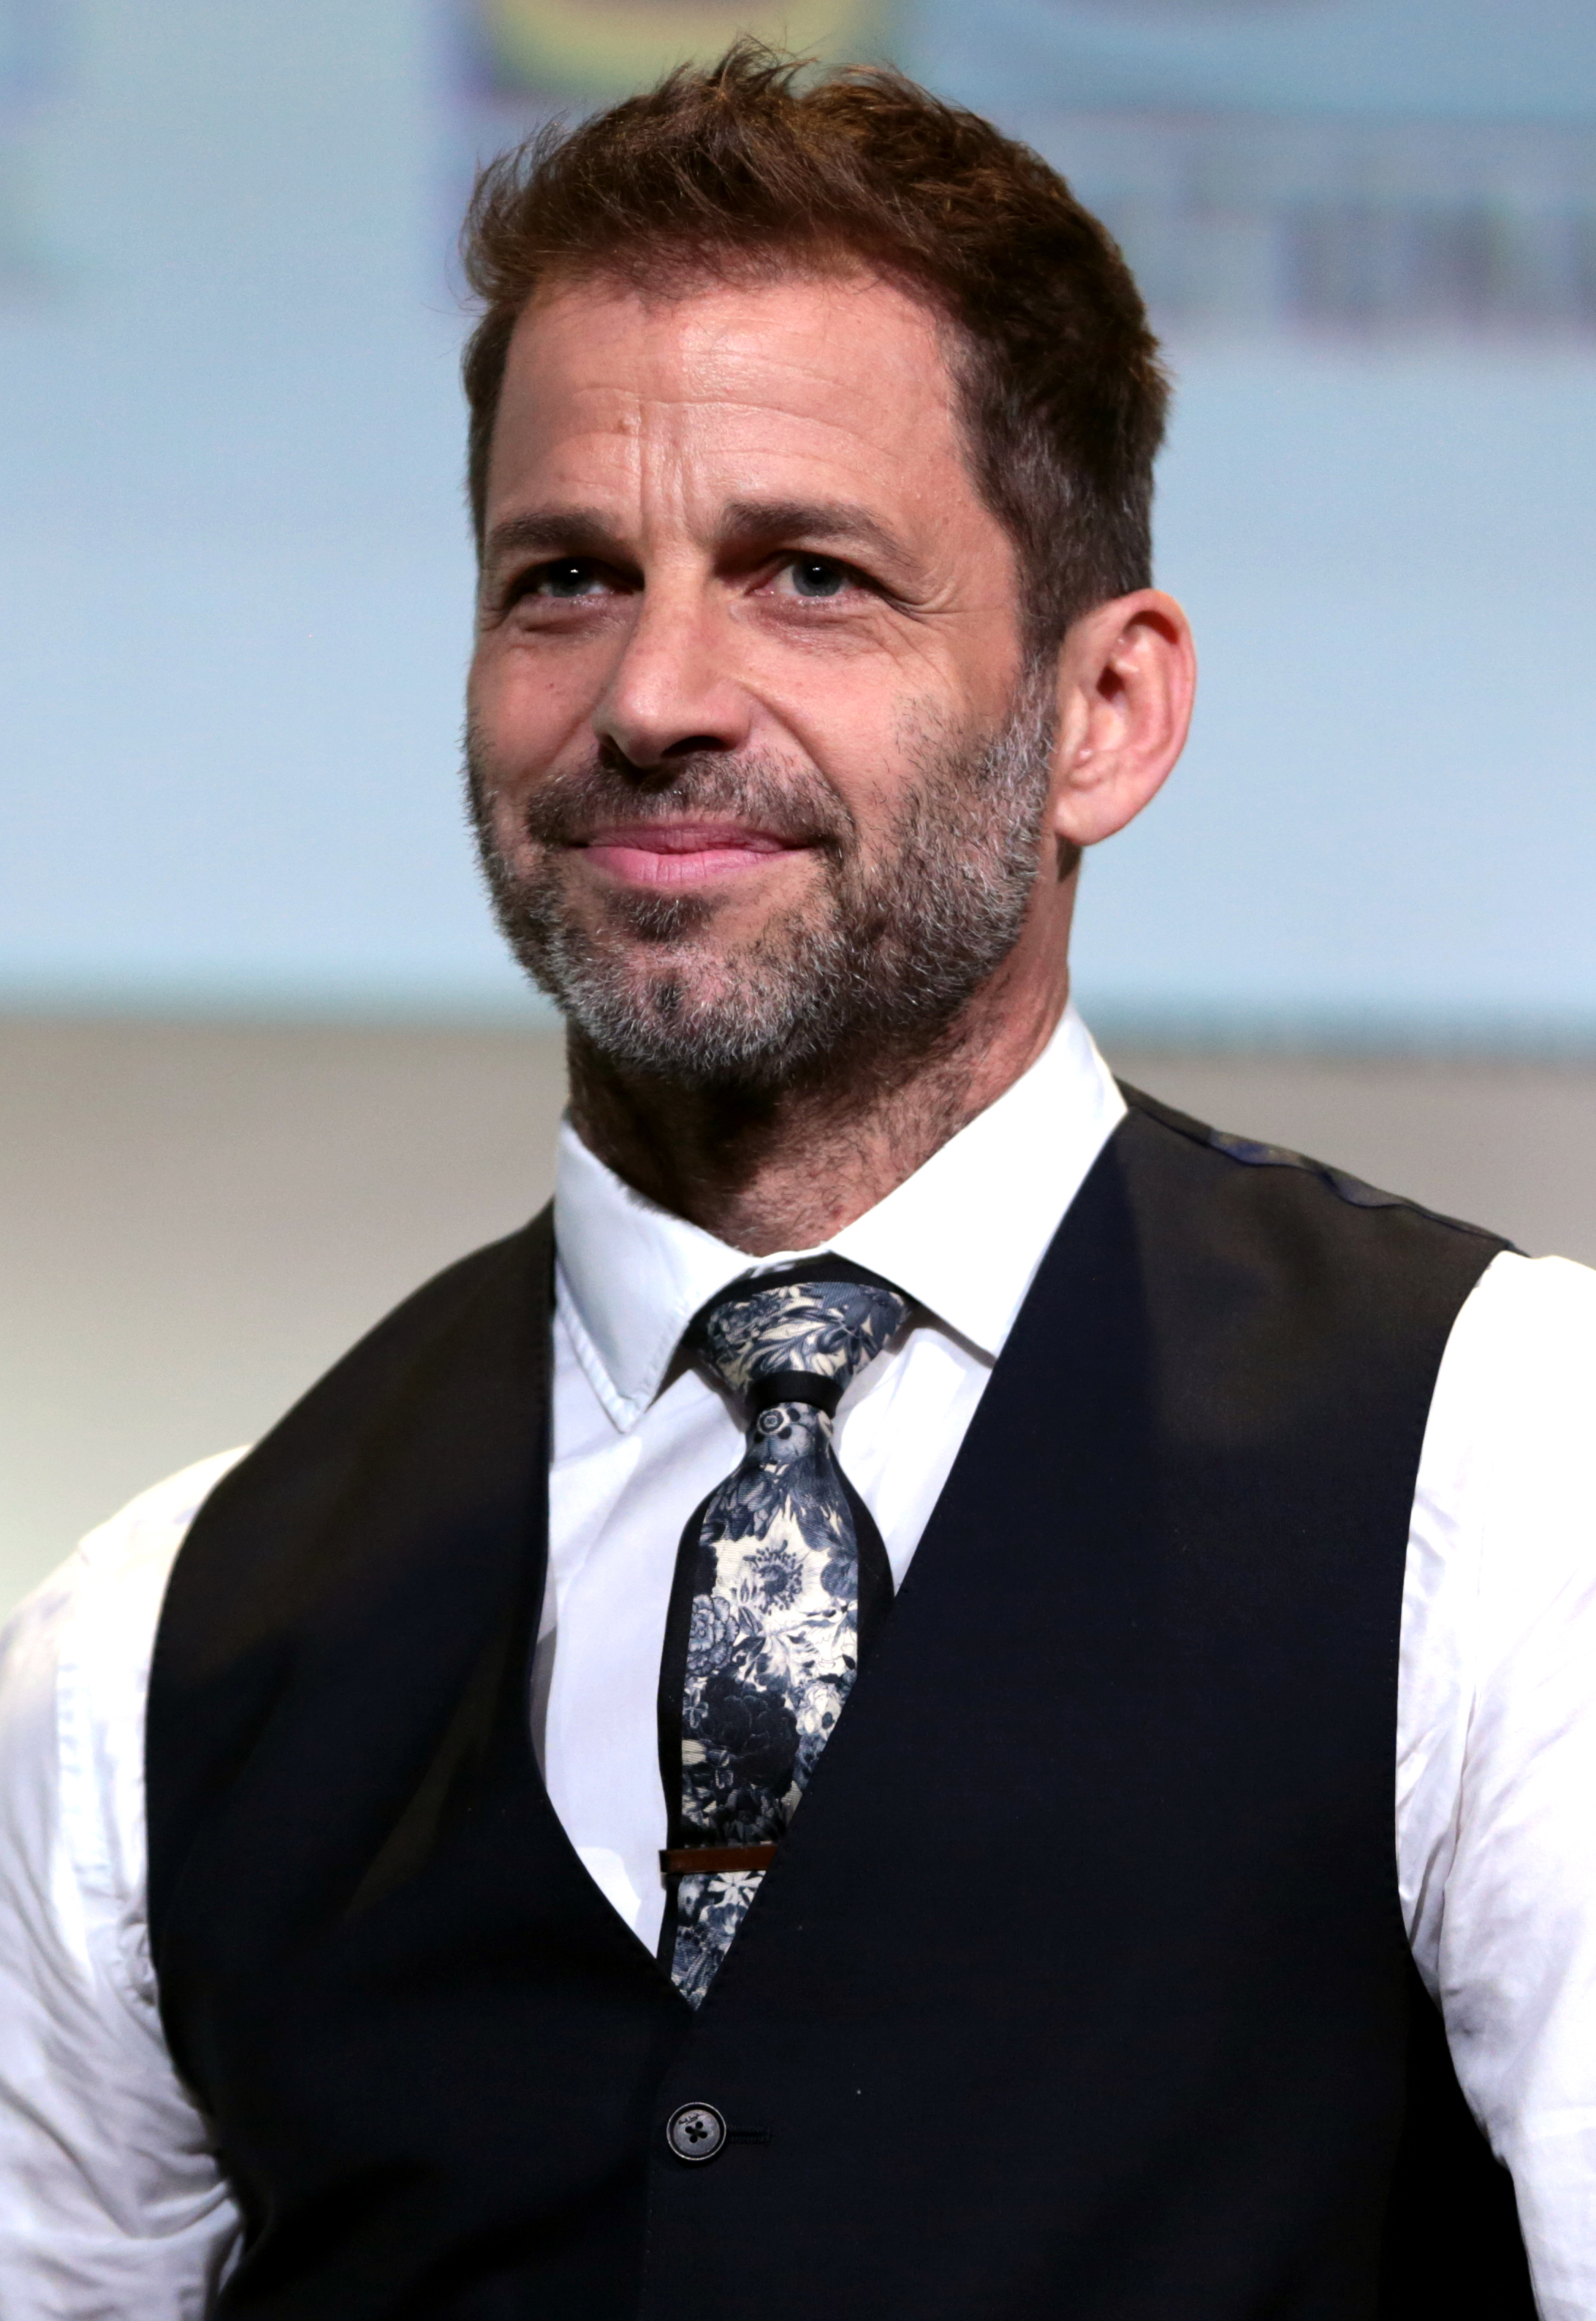 The 52-year old son of father Charles Edward Snyder and mother Marsha Snyder Zack Snyder in 2018 photo. Zack Snyder earned a  million dollar salary - leaving the net worth at 22 million in 2018